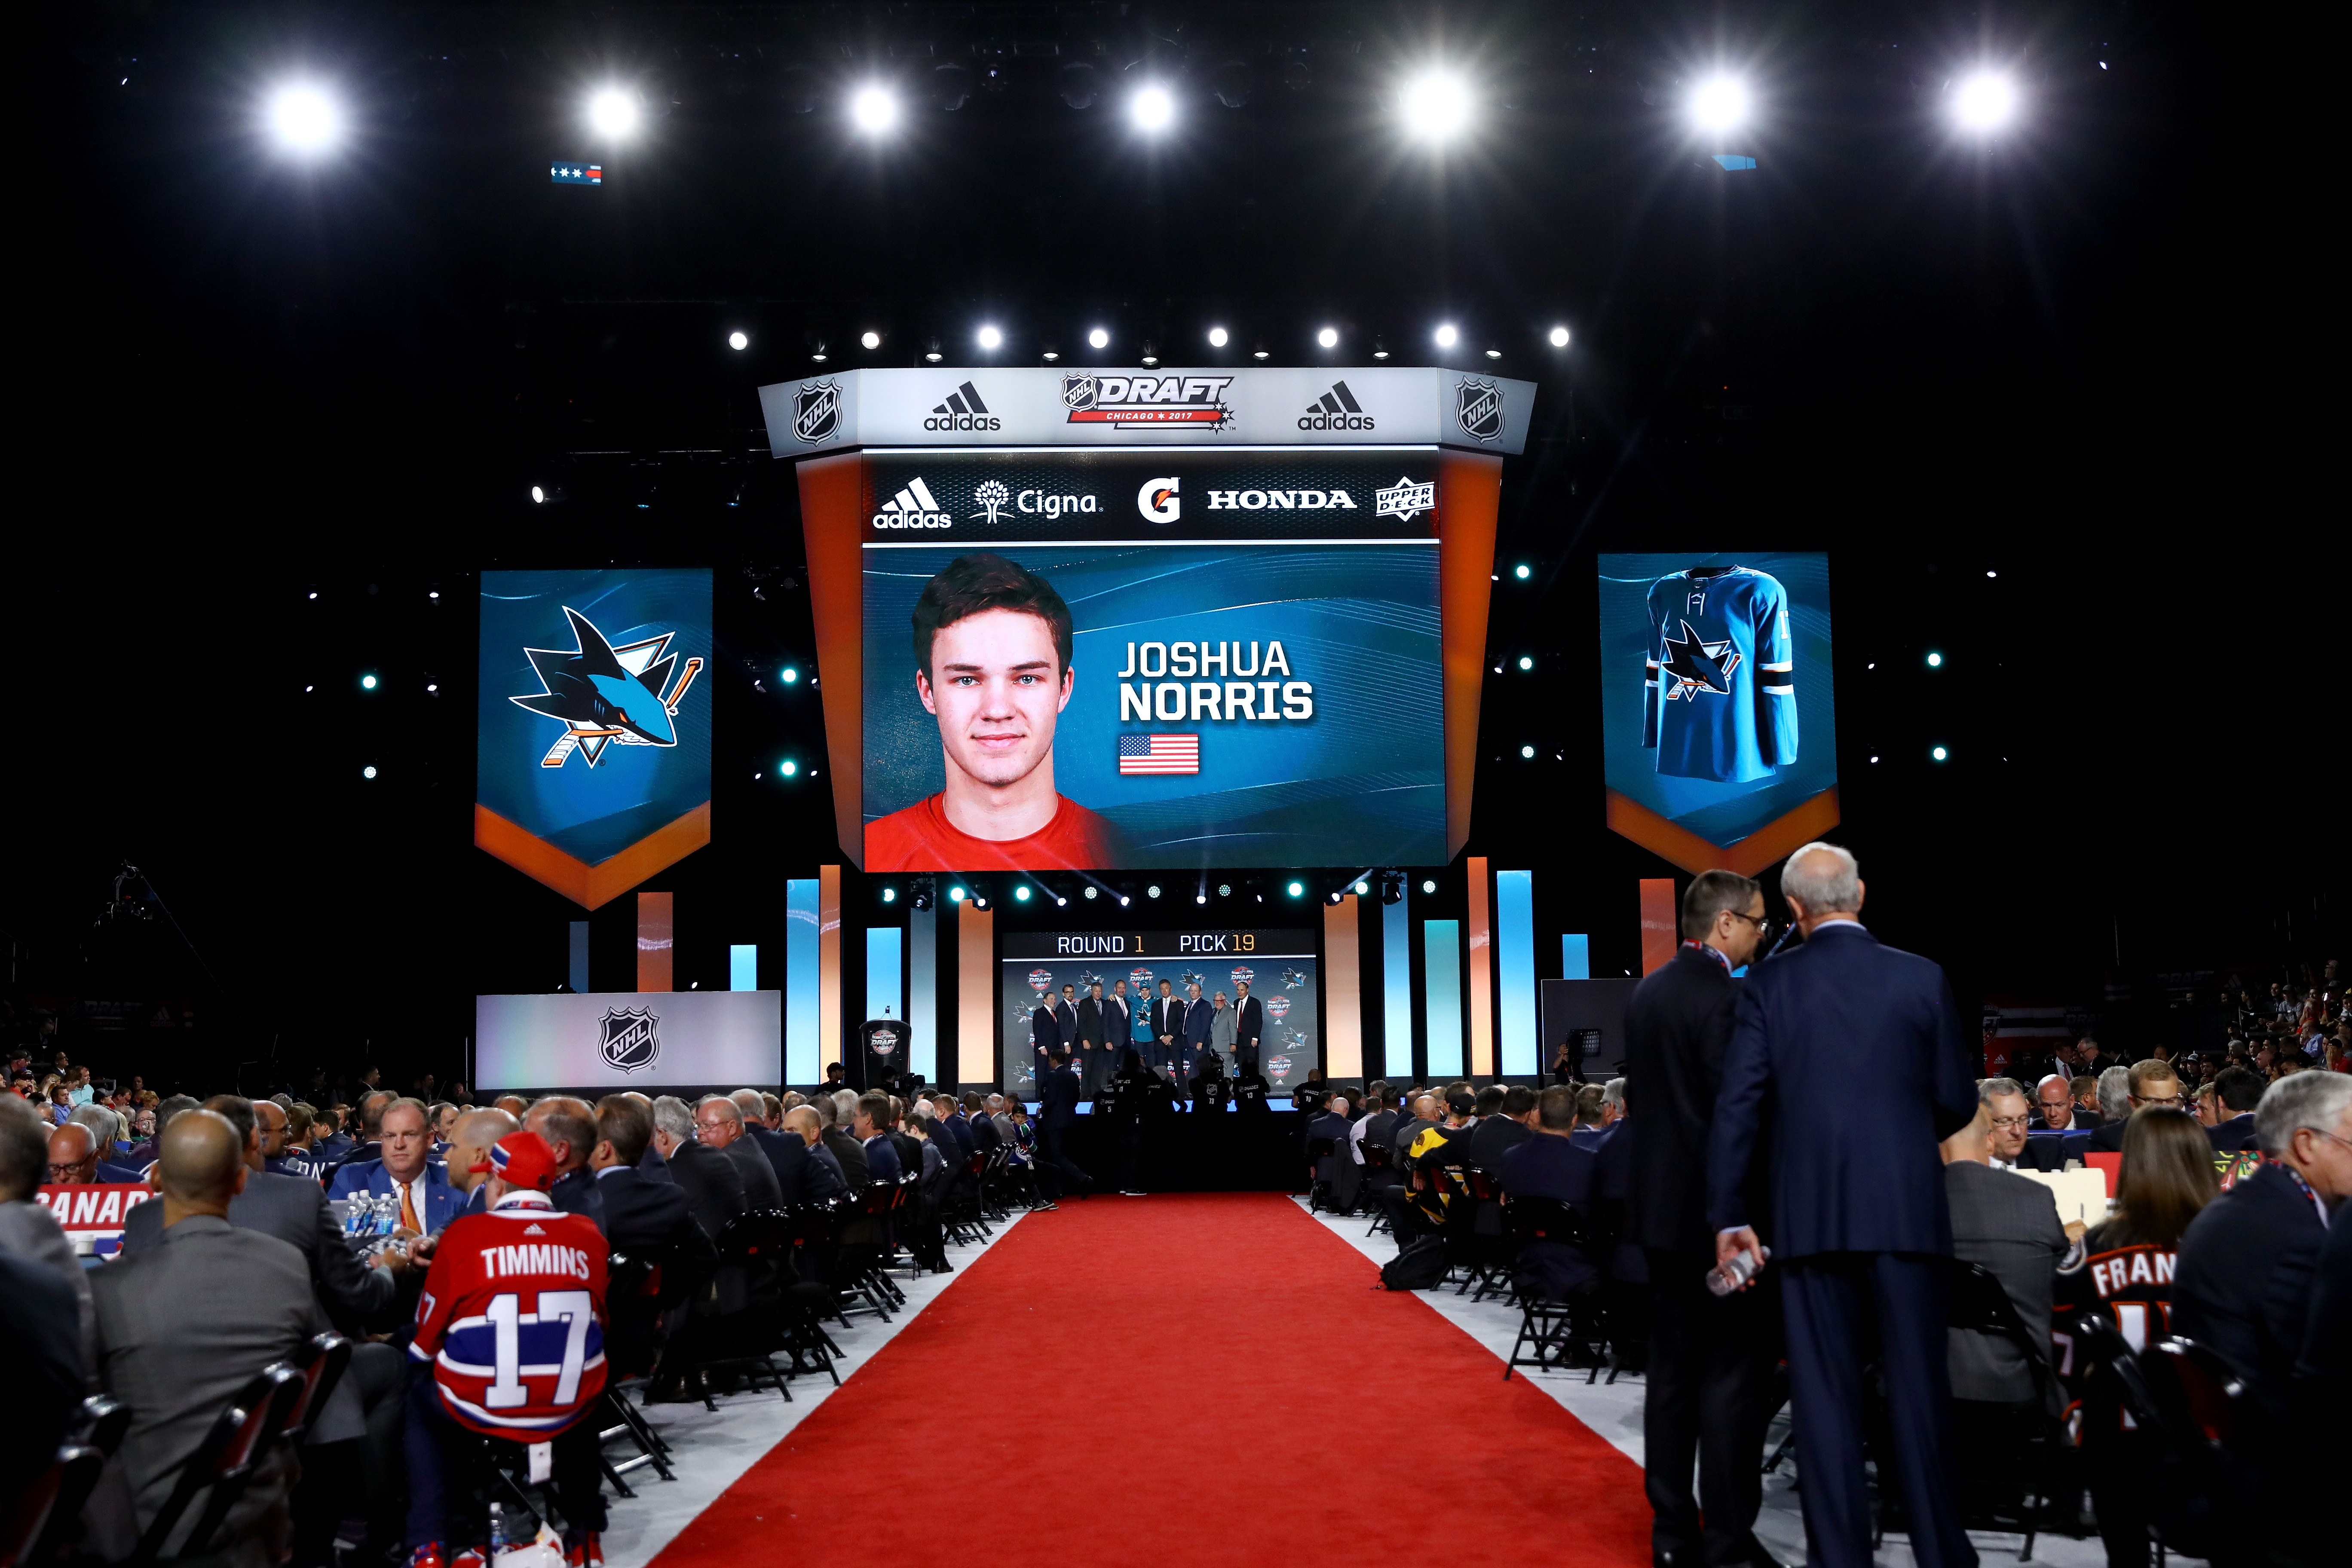 CHICAGO, IL - JUNE 23: A general view as Joshua Norris is selected 19th overall by the San Jose Sharks during the 2017 NHL Draft at the United Center on June 23, 2017 in Chicago, Illinois.